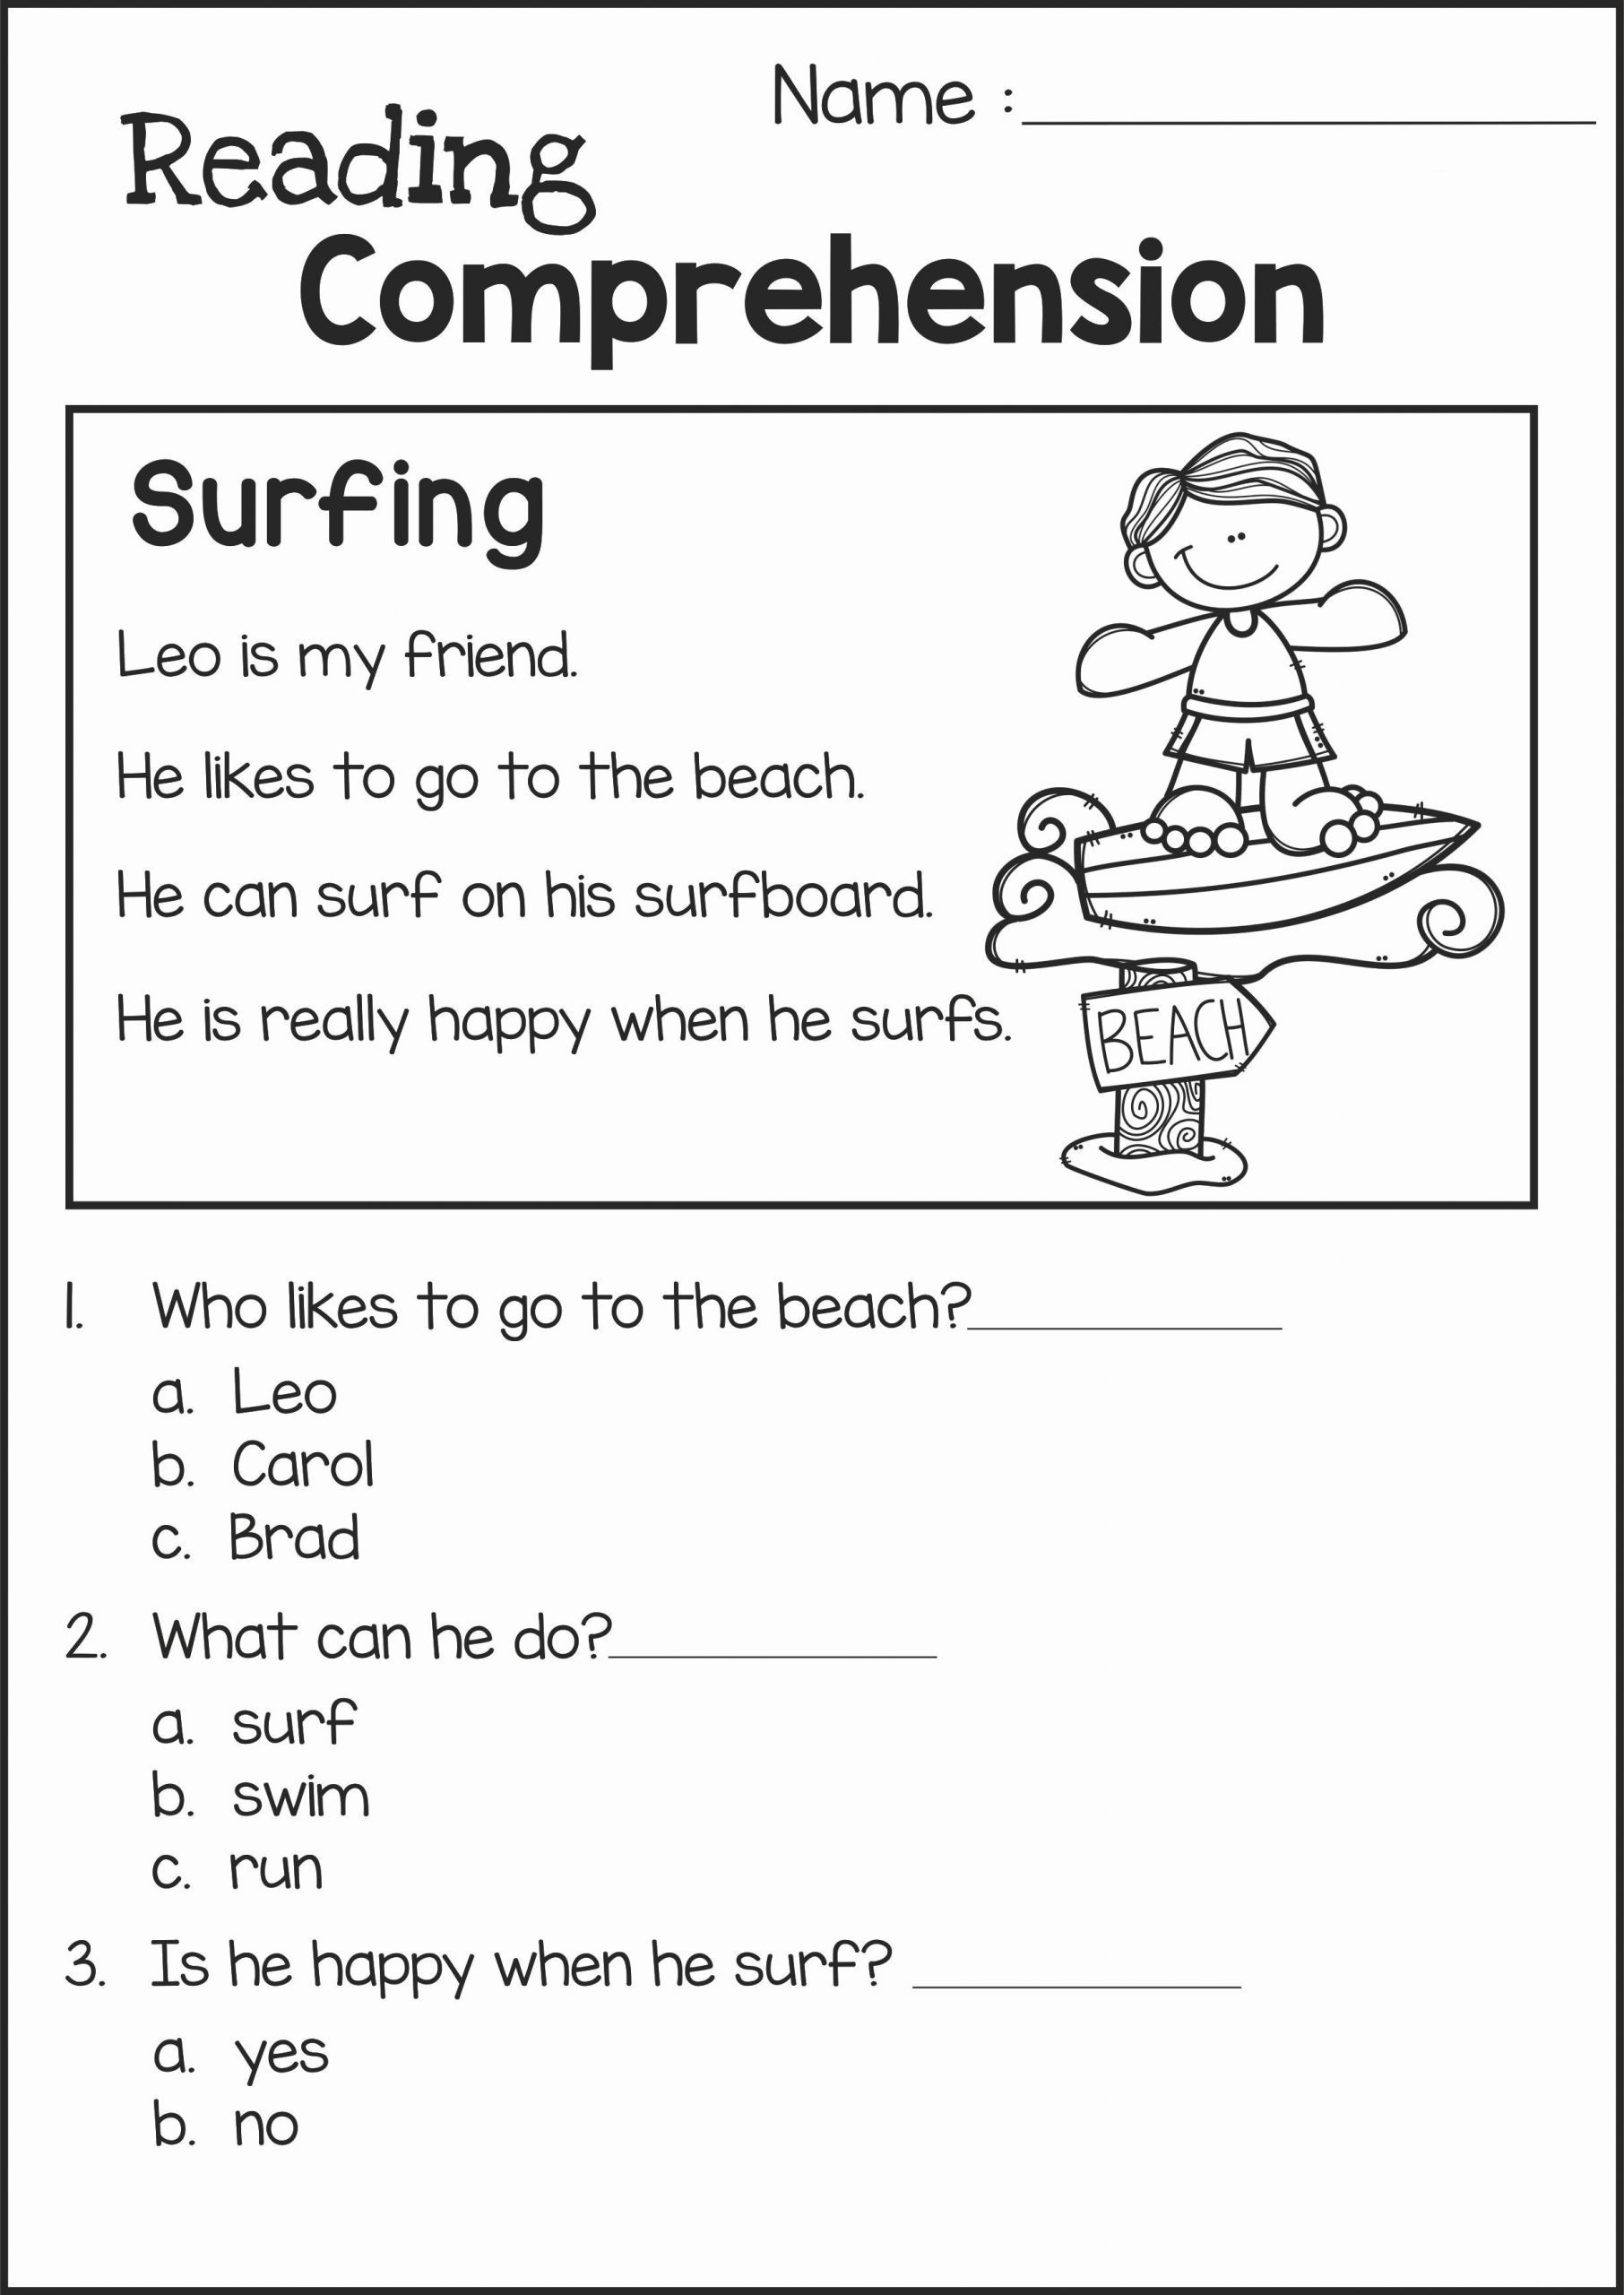 Reading Worksheet For Kindergarten 2 In